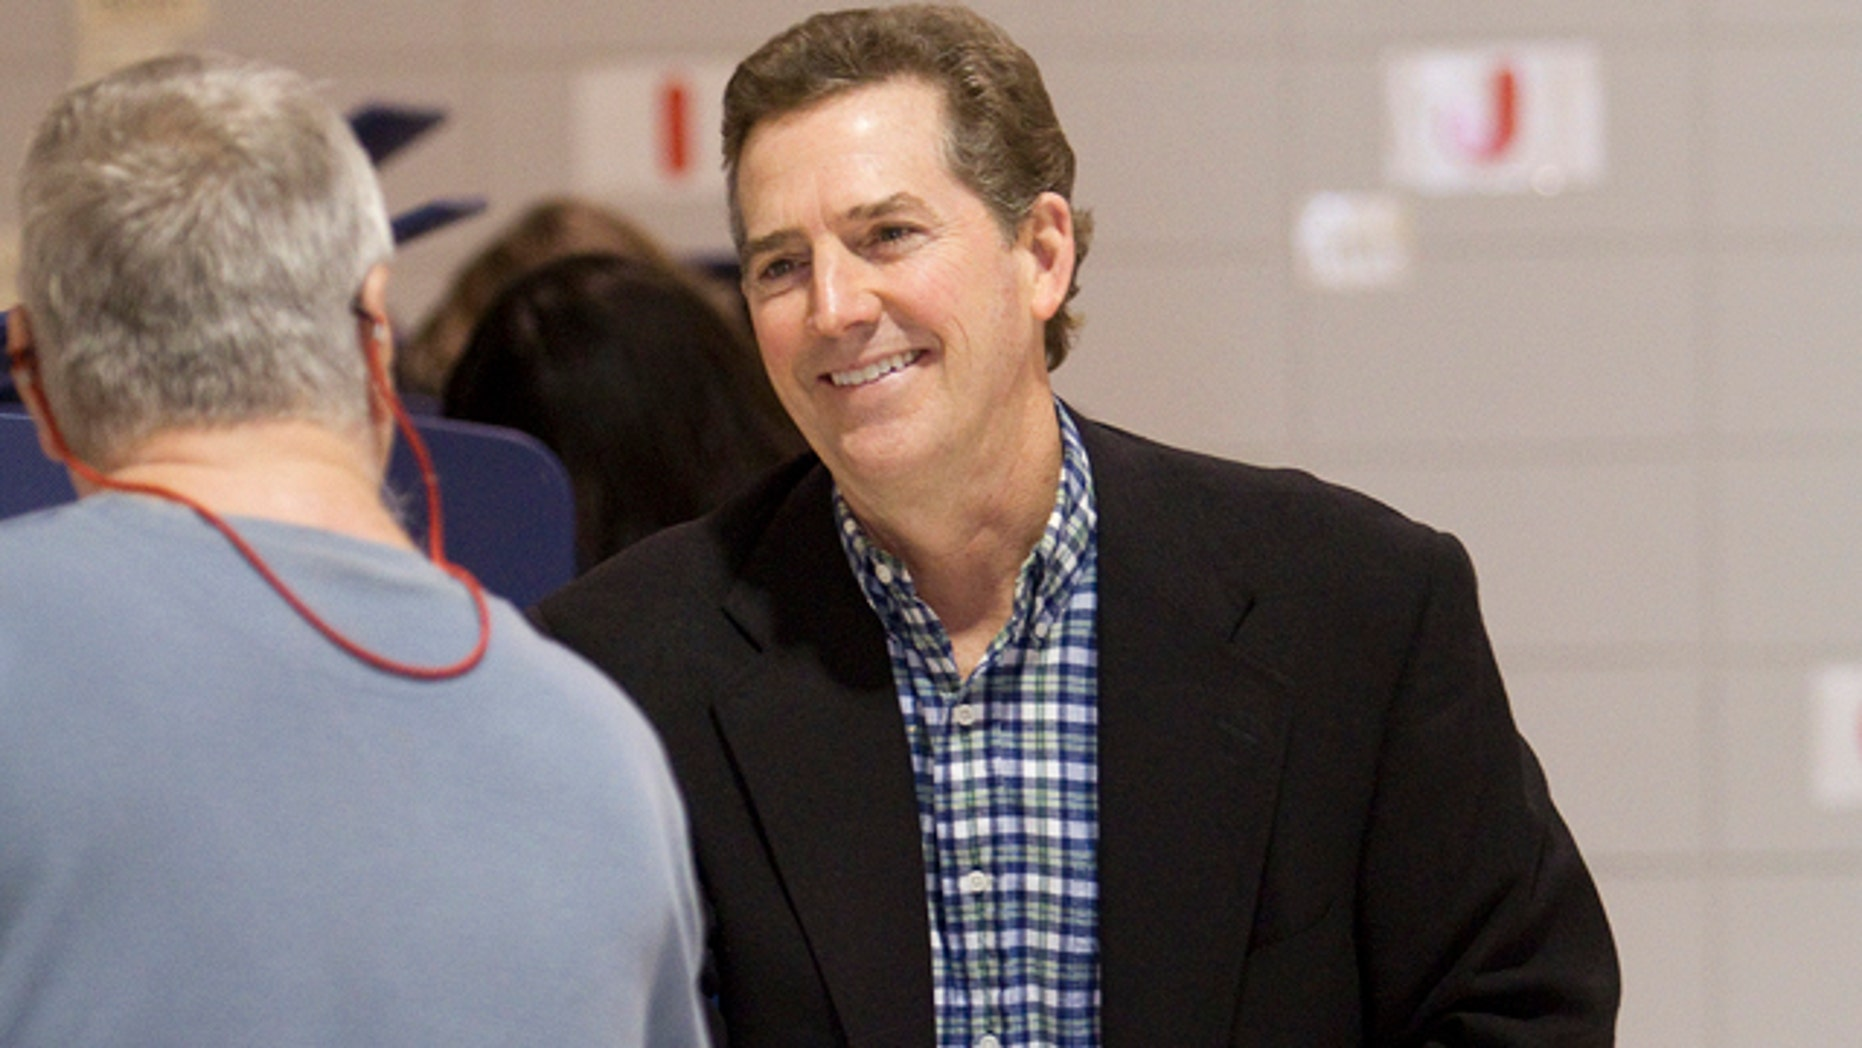 FILE: Sen. Jim DeMint waits to cast his vote at Mitchell Road Elementary School in Greenville, S.C., on Nov. 2.